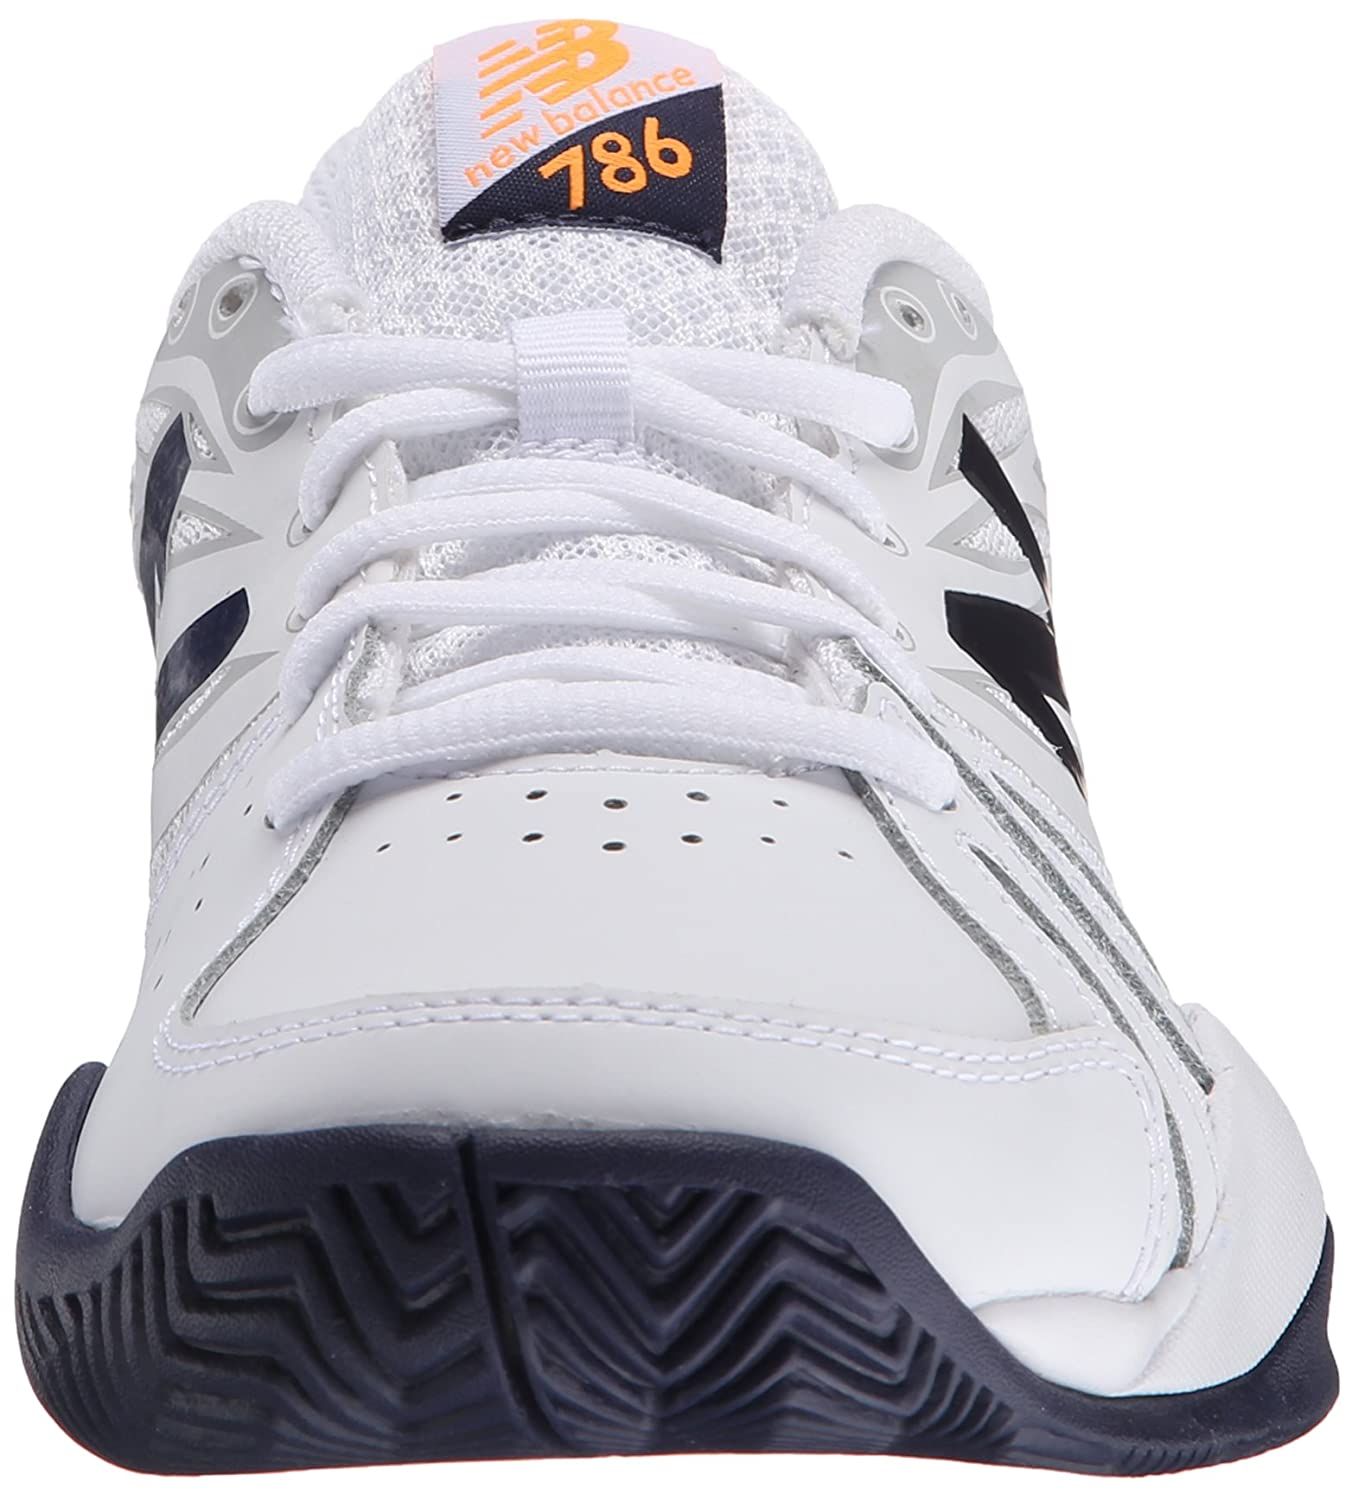 New Balance Women's 786v2 Cushioning Tennis Shoe B00Z7KHTFC 9.5 2A US|White/Blue